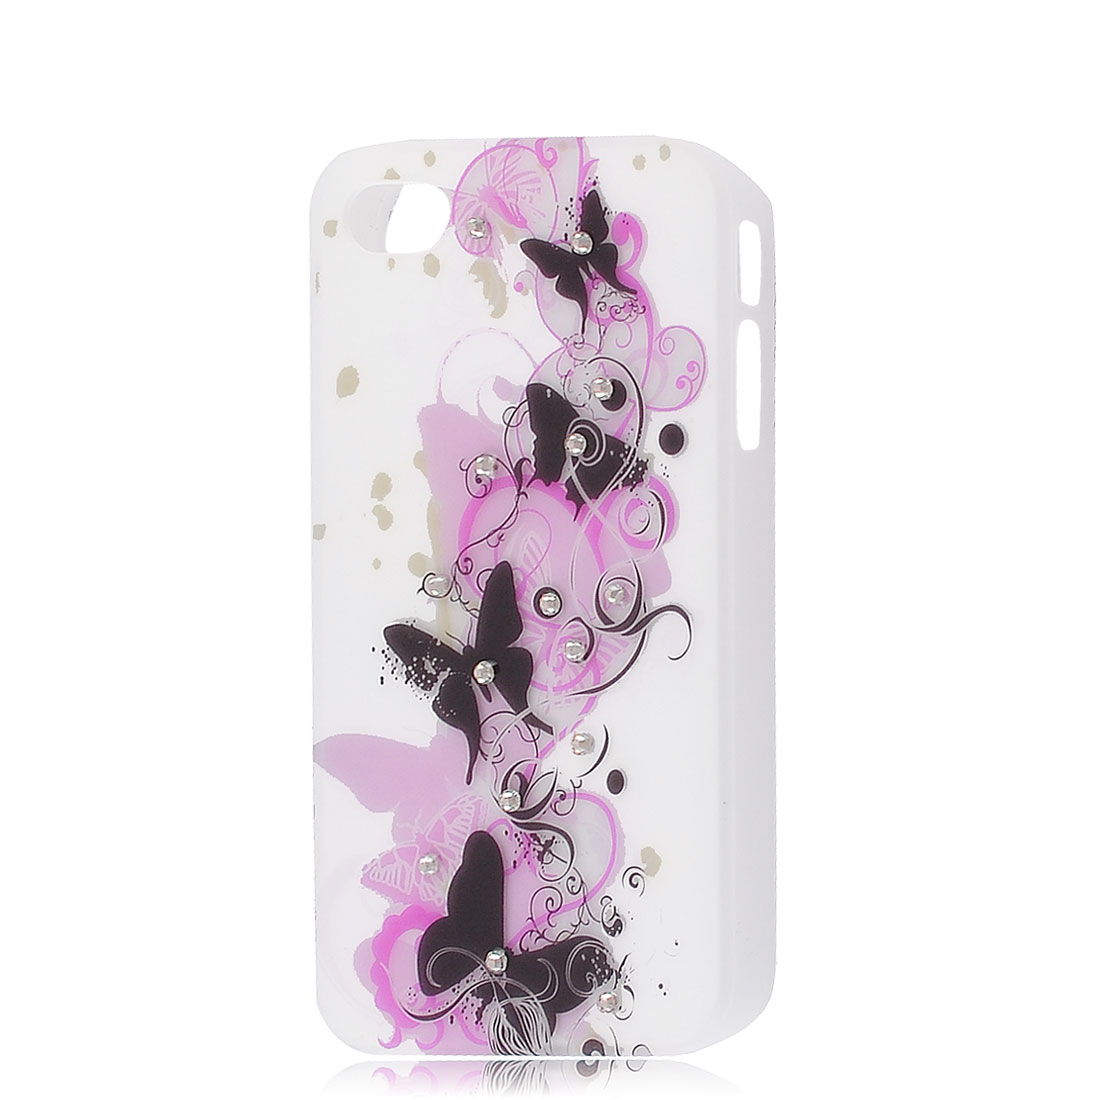 Butterfly Pattern Rubber Coated Plastic Back Cover for iPhone 4 4G 4GS 4S